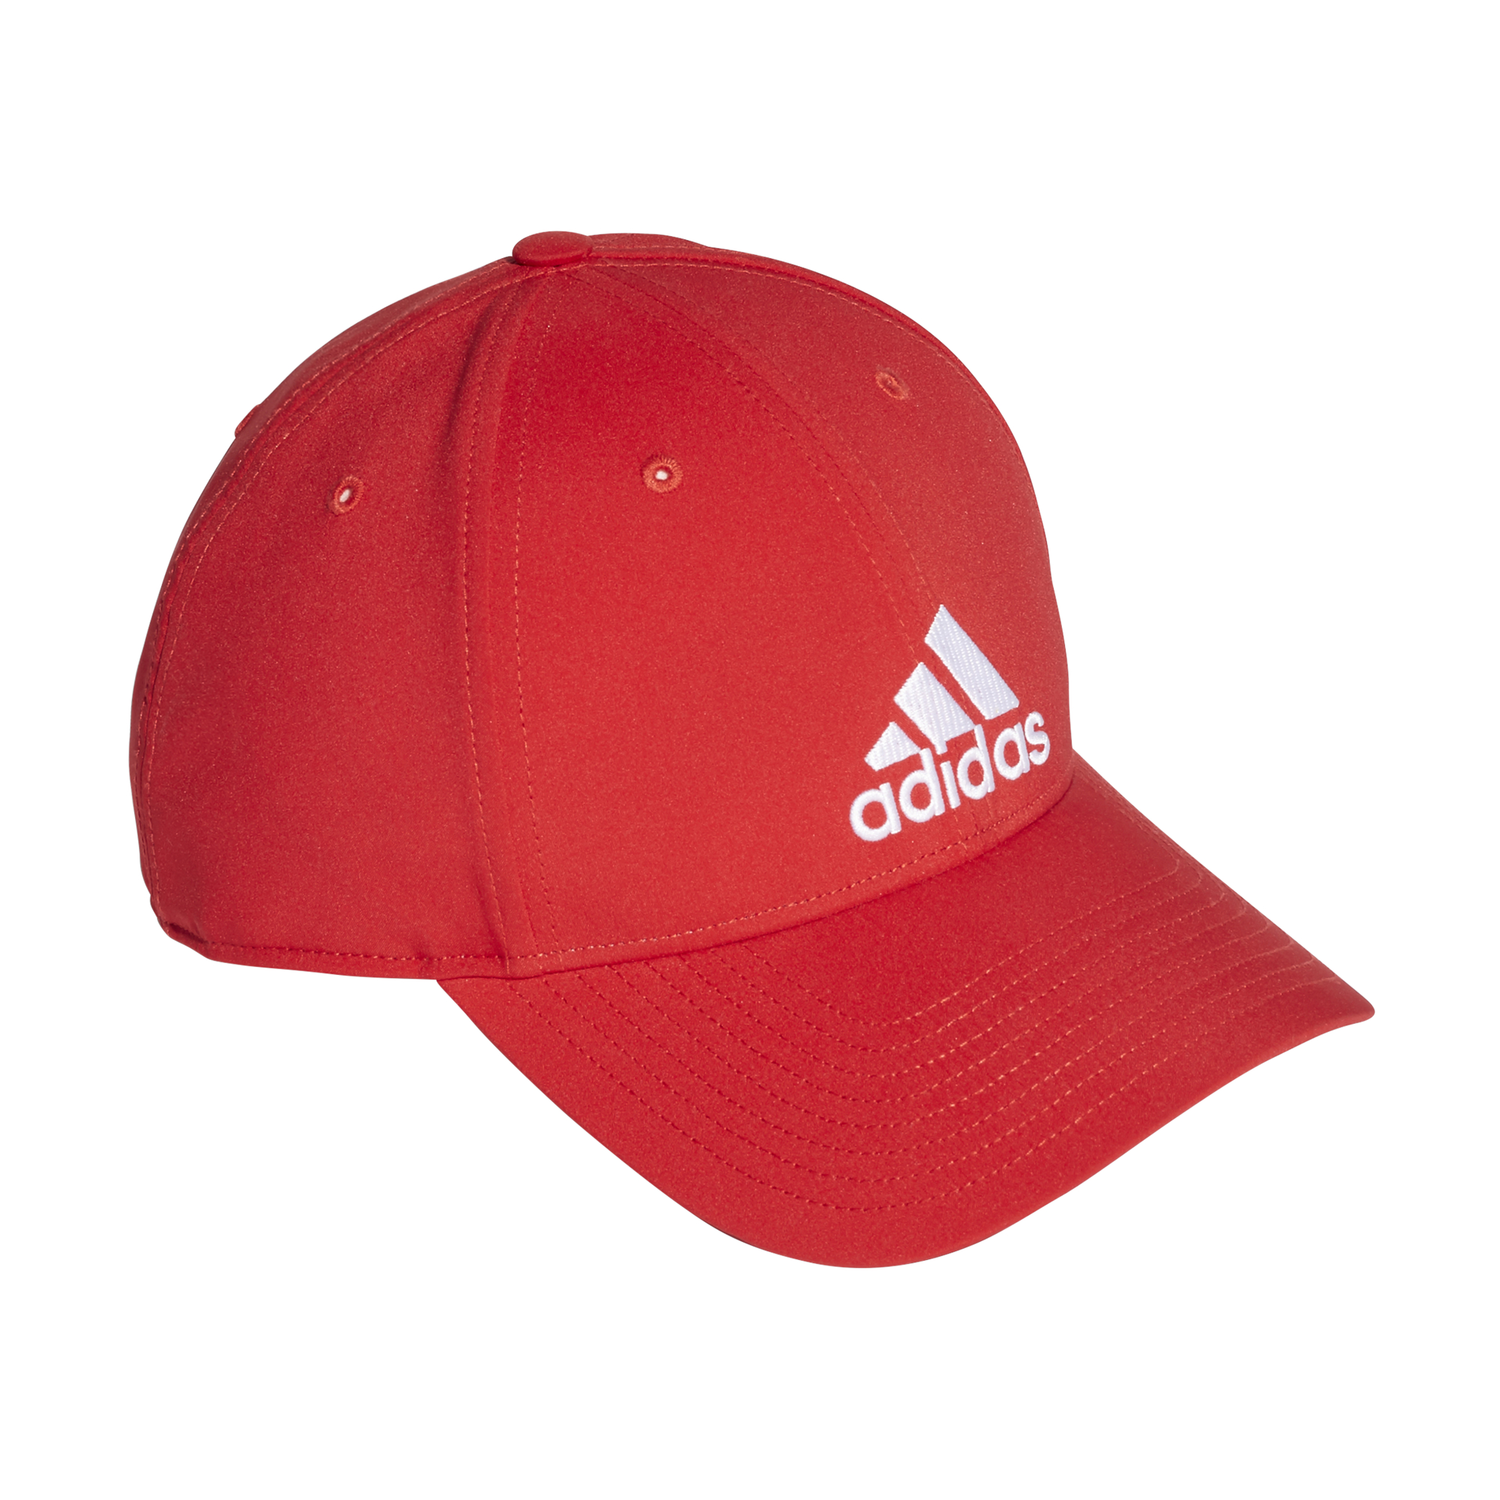 4ed14b31fe4 CZAPKA UNISEX ADIDAS 6 PANEL CAP LIGHTWEIGHT EMBROIDERED LOGO ...